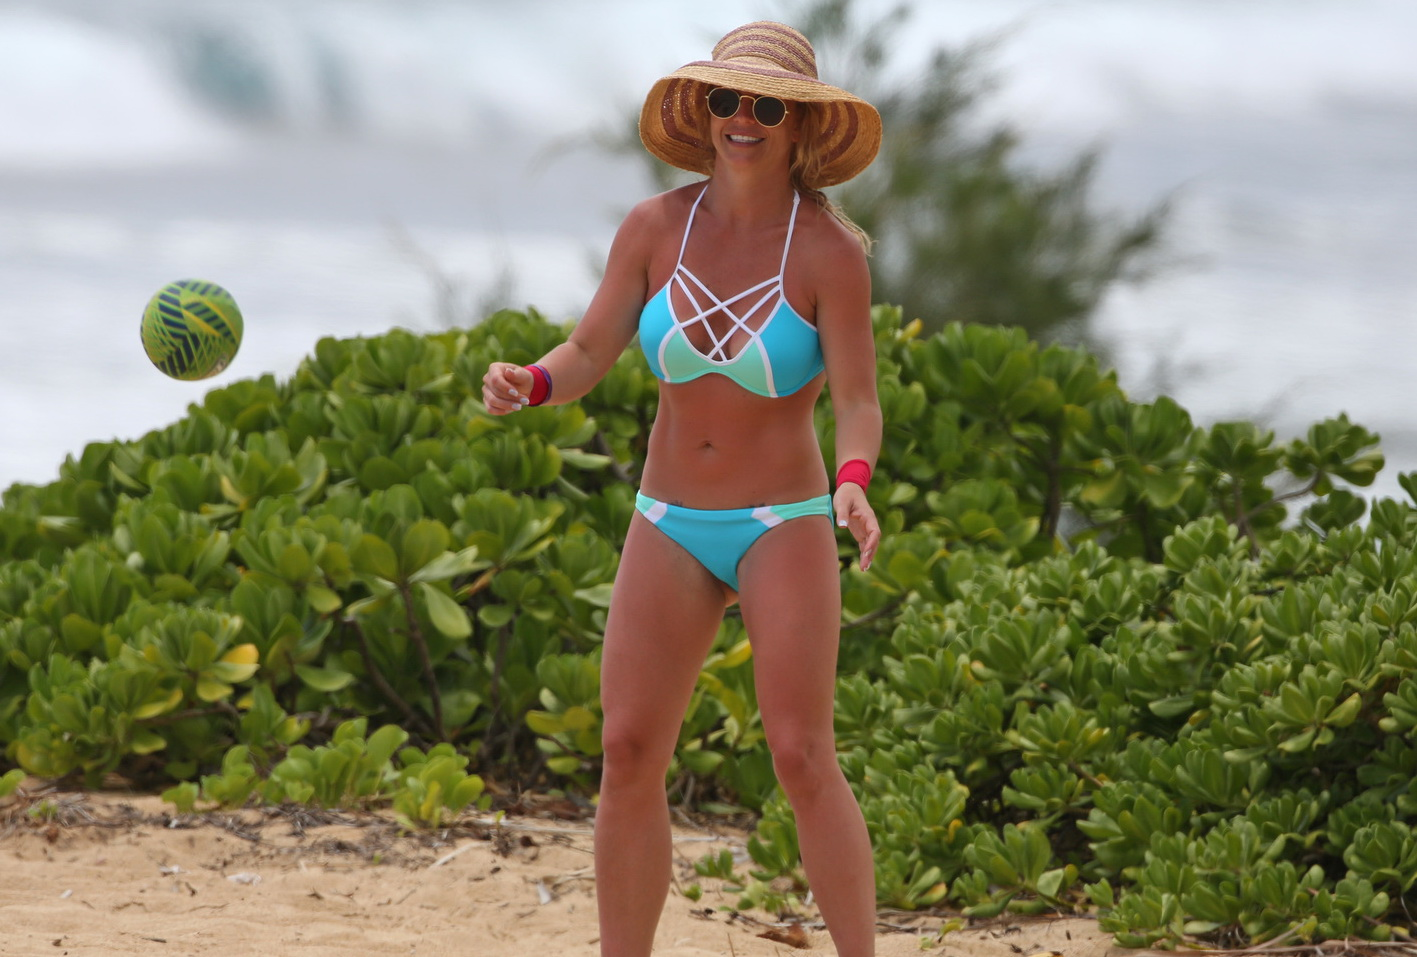 britney-spears-wearing-a-bikini-in-hawaii-34